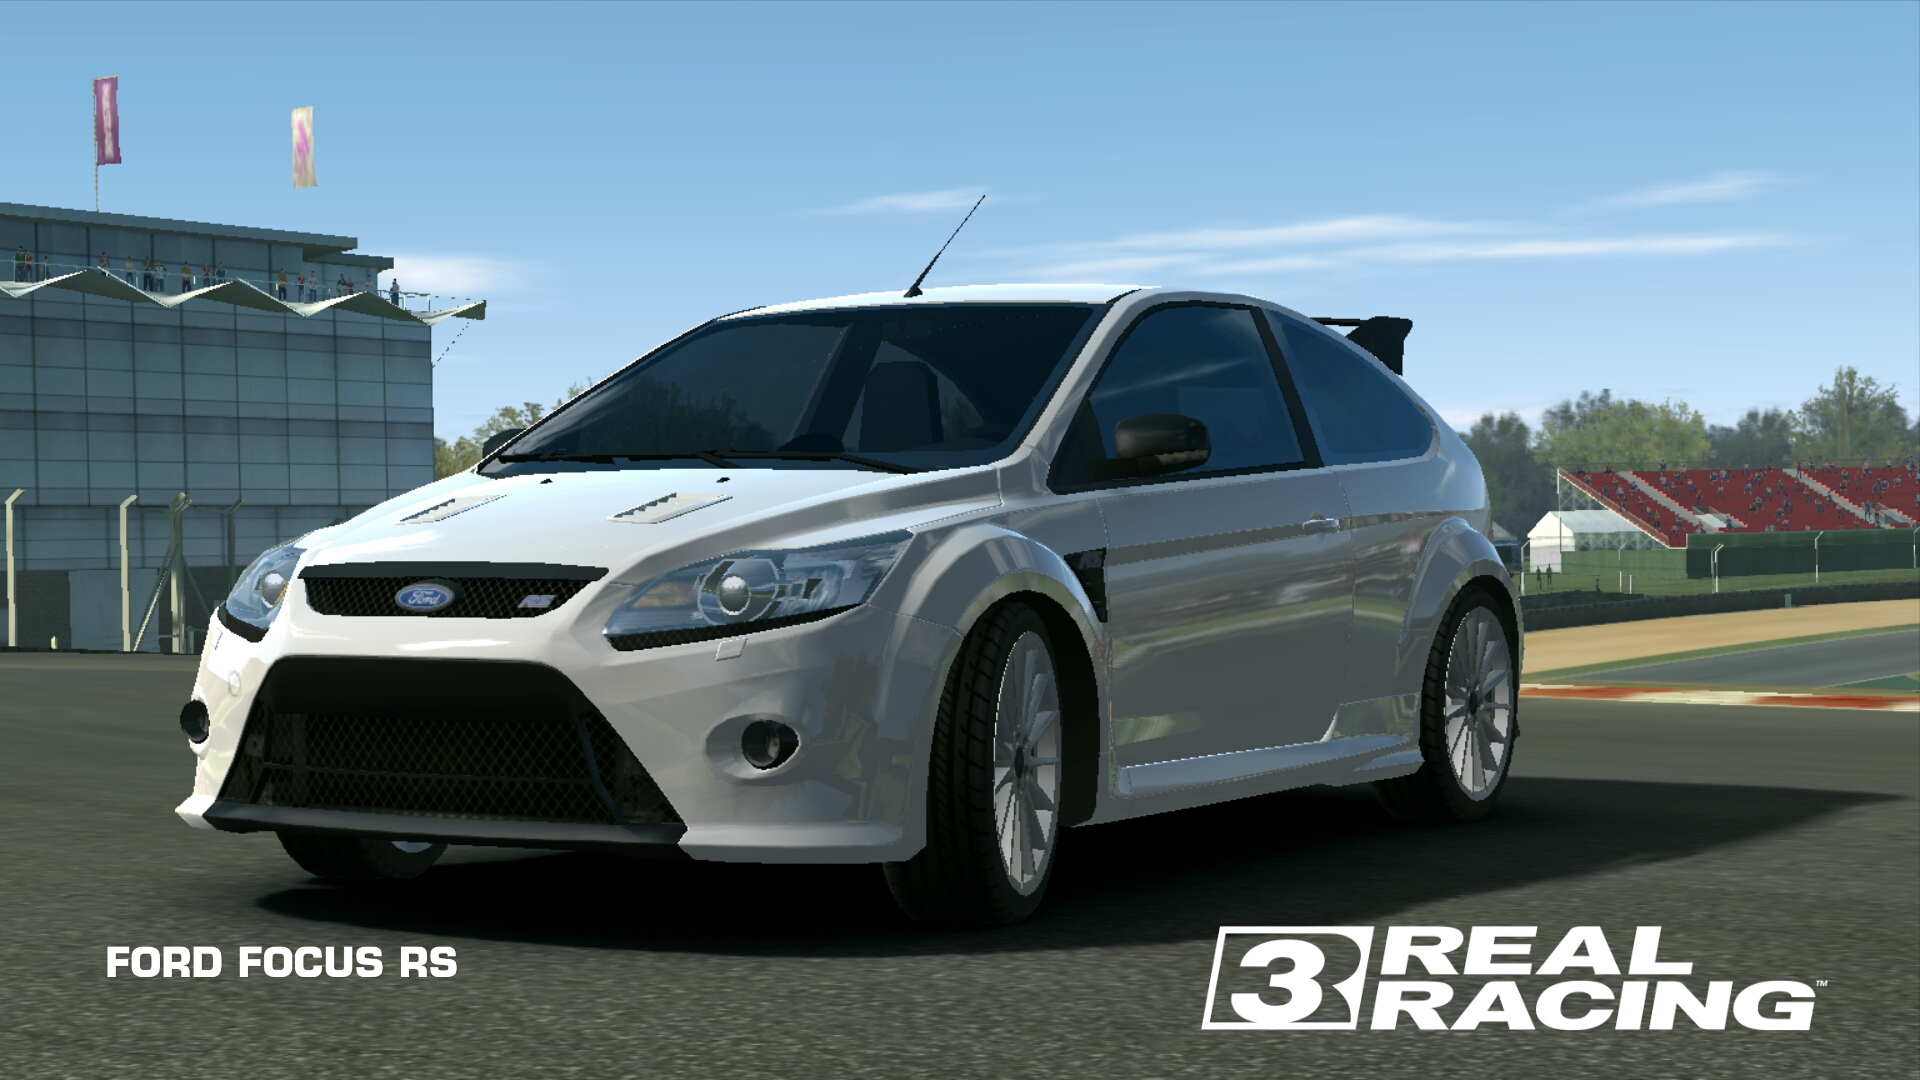 FORD FOCUS RS | Real Racing 3 Wiki | FANDOM powered by Wikia